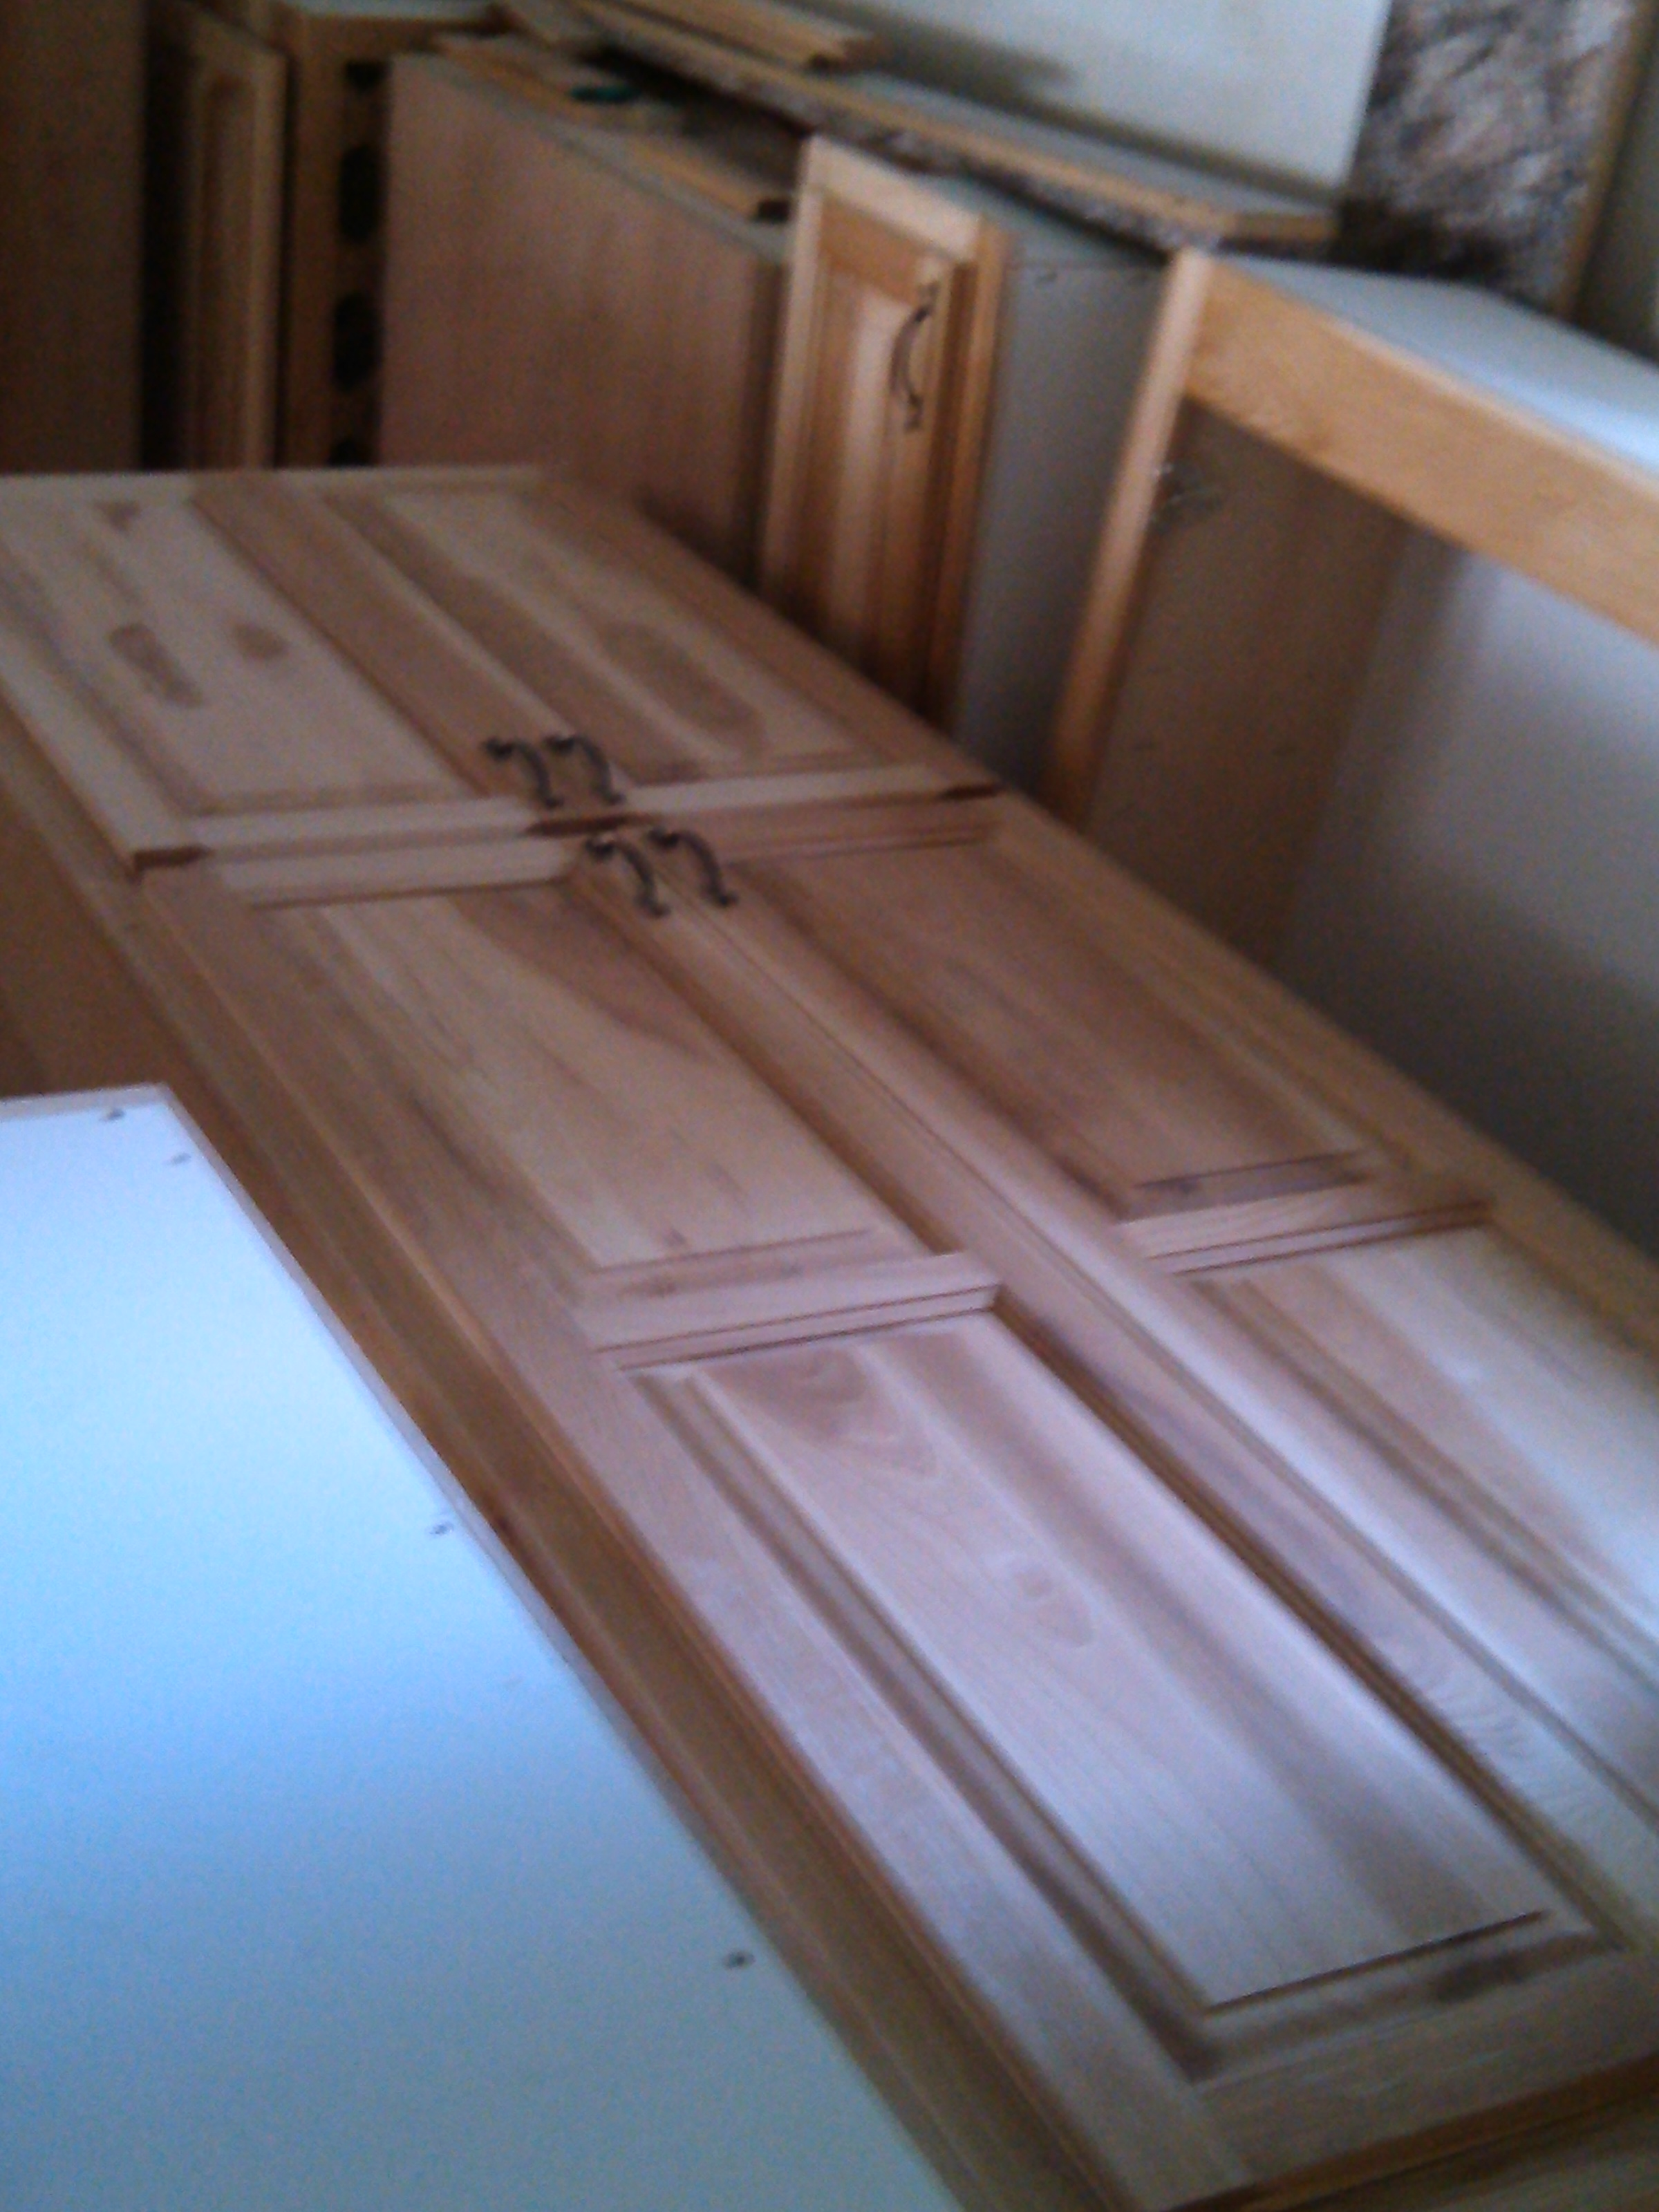 Stand alone closet- hickory, natural stain and laquer